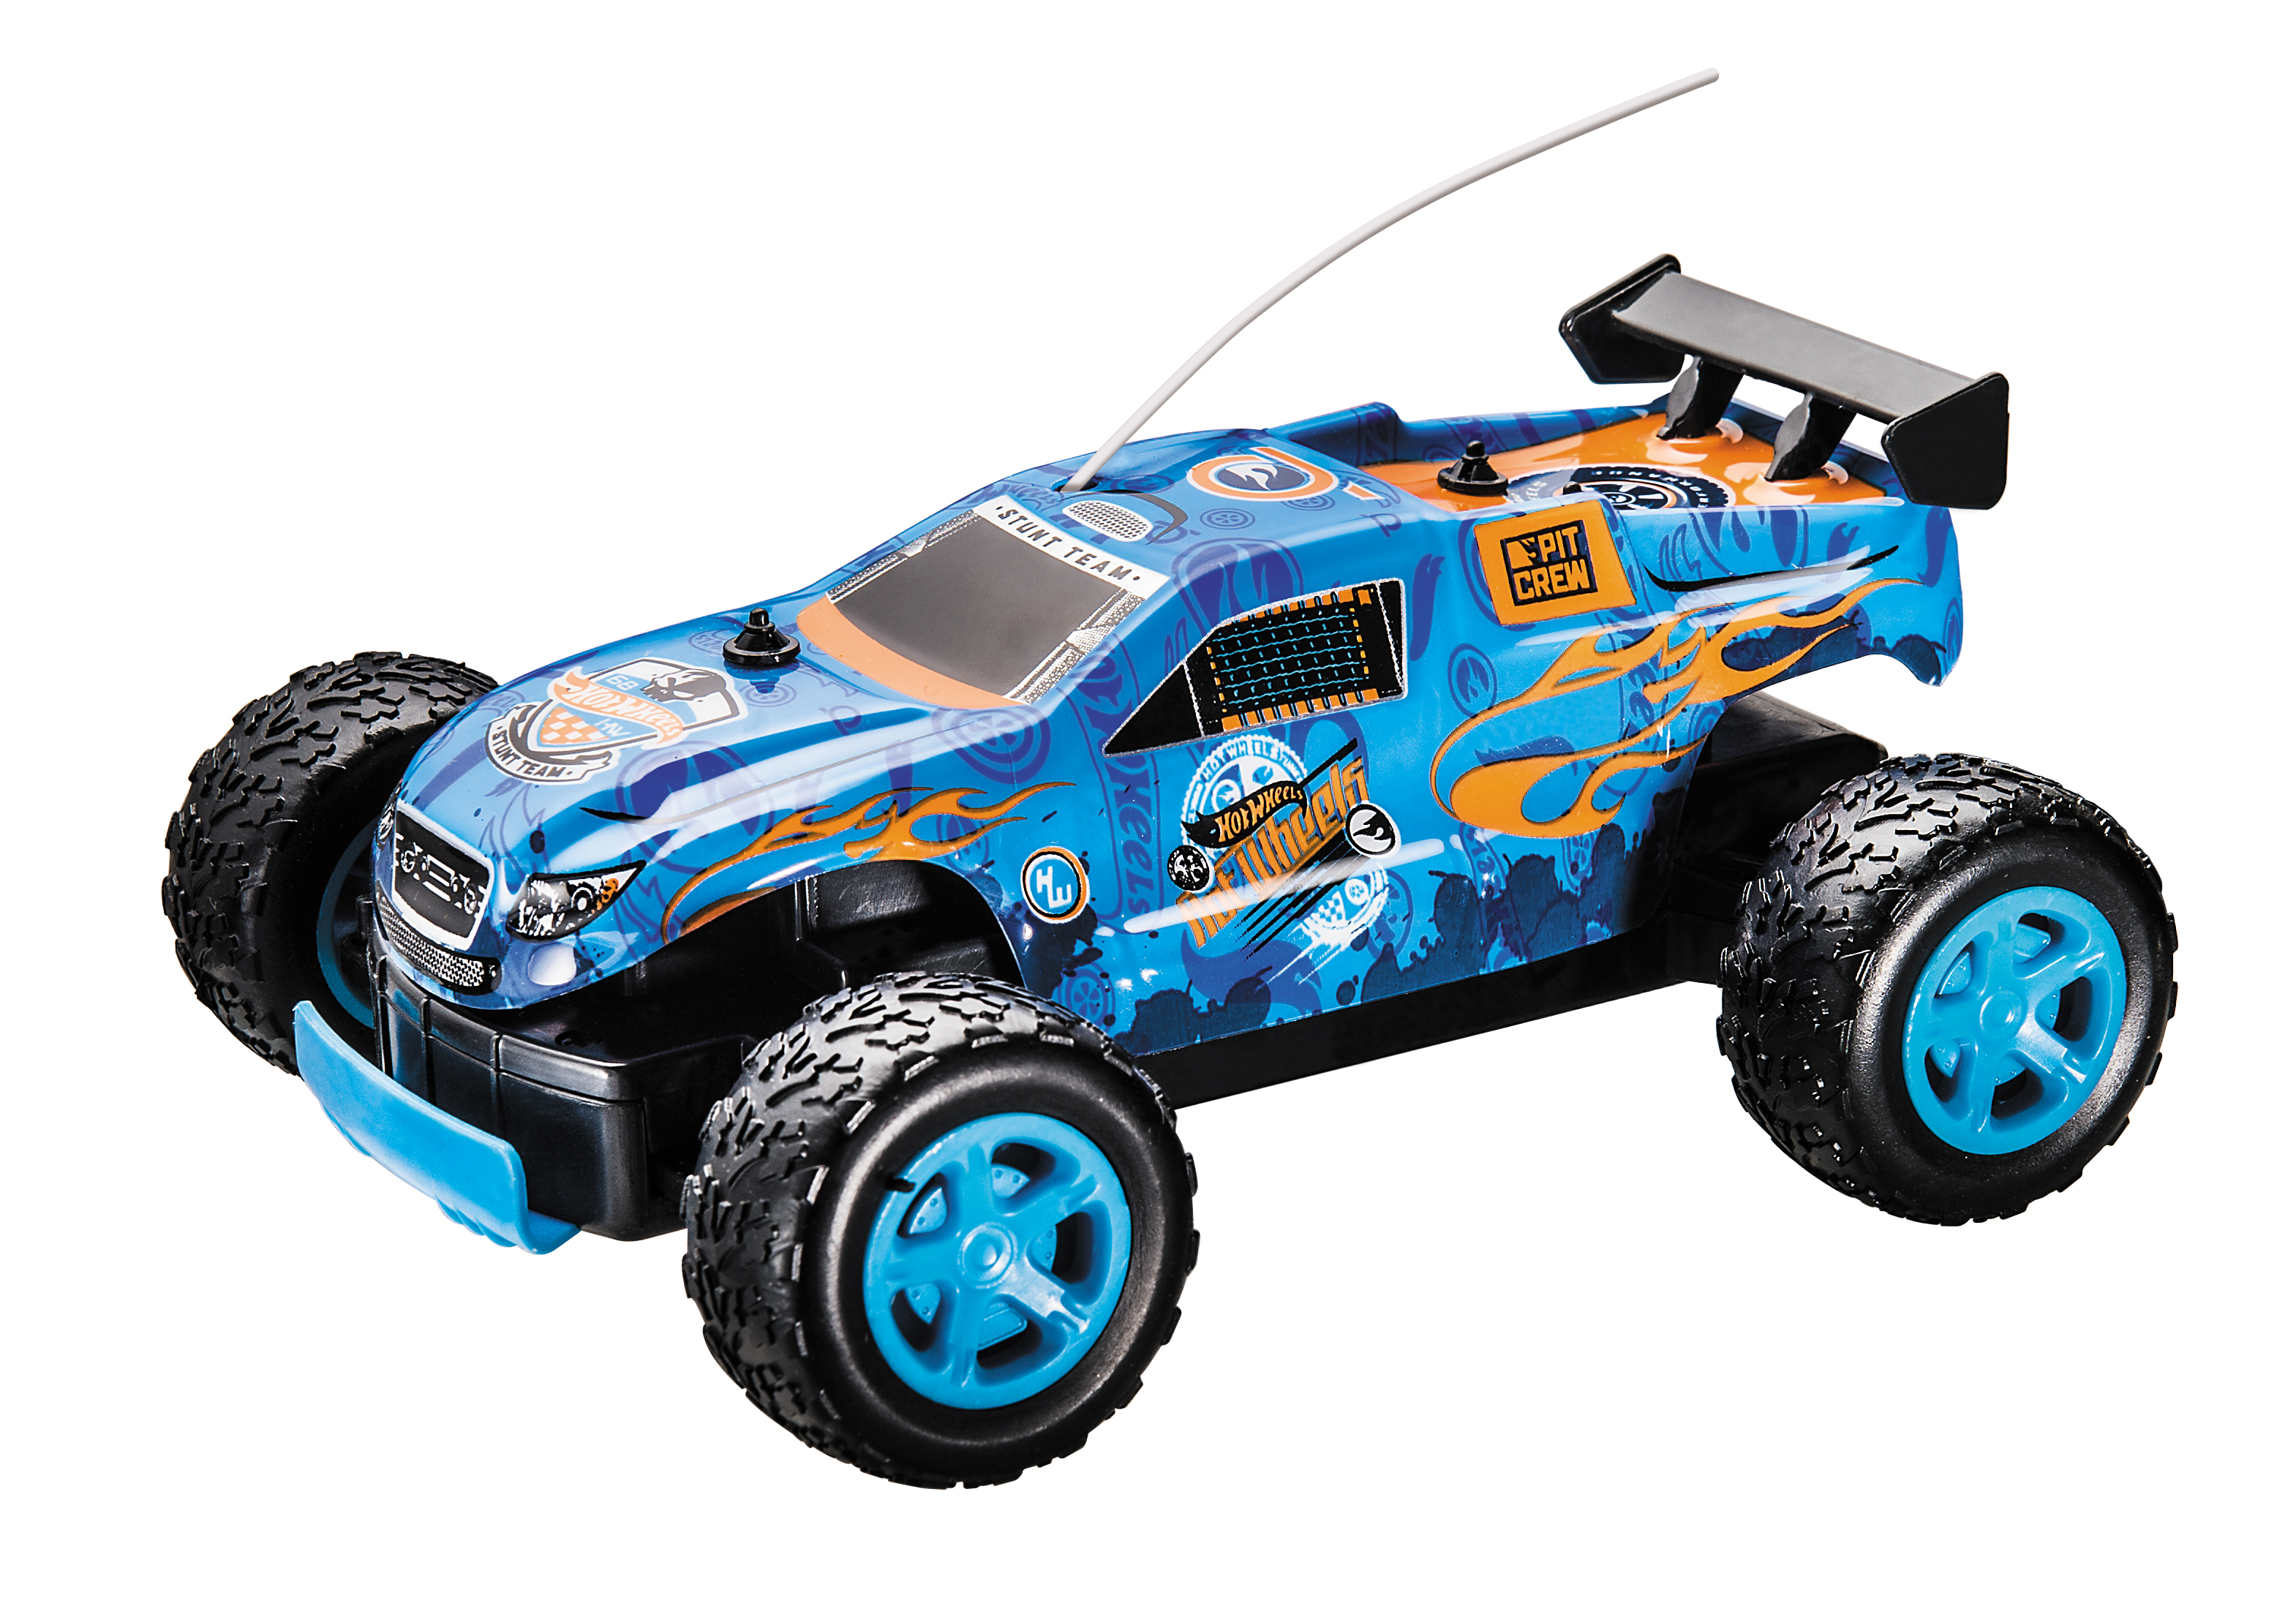 HOT WHEELS MICRO BUGGY 63339 - N75420